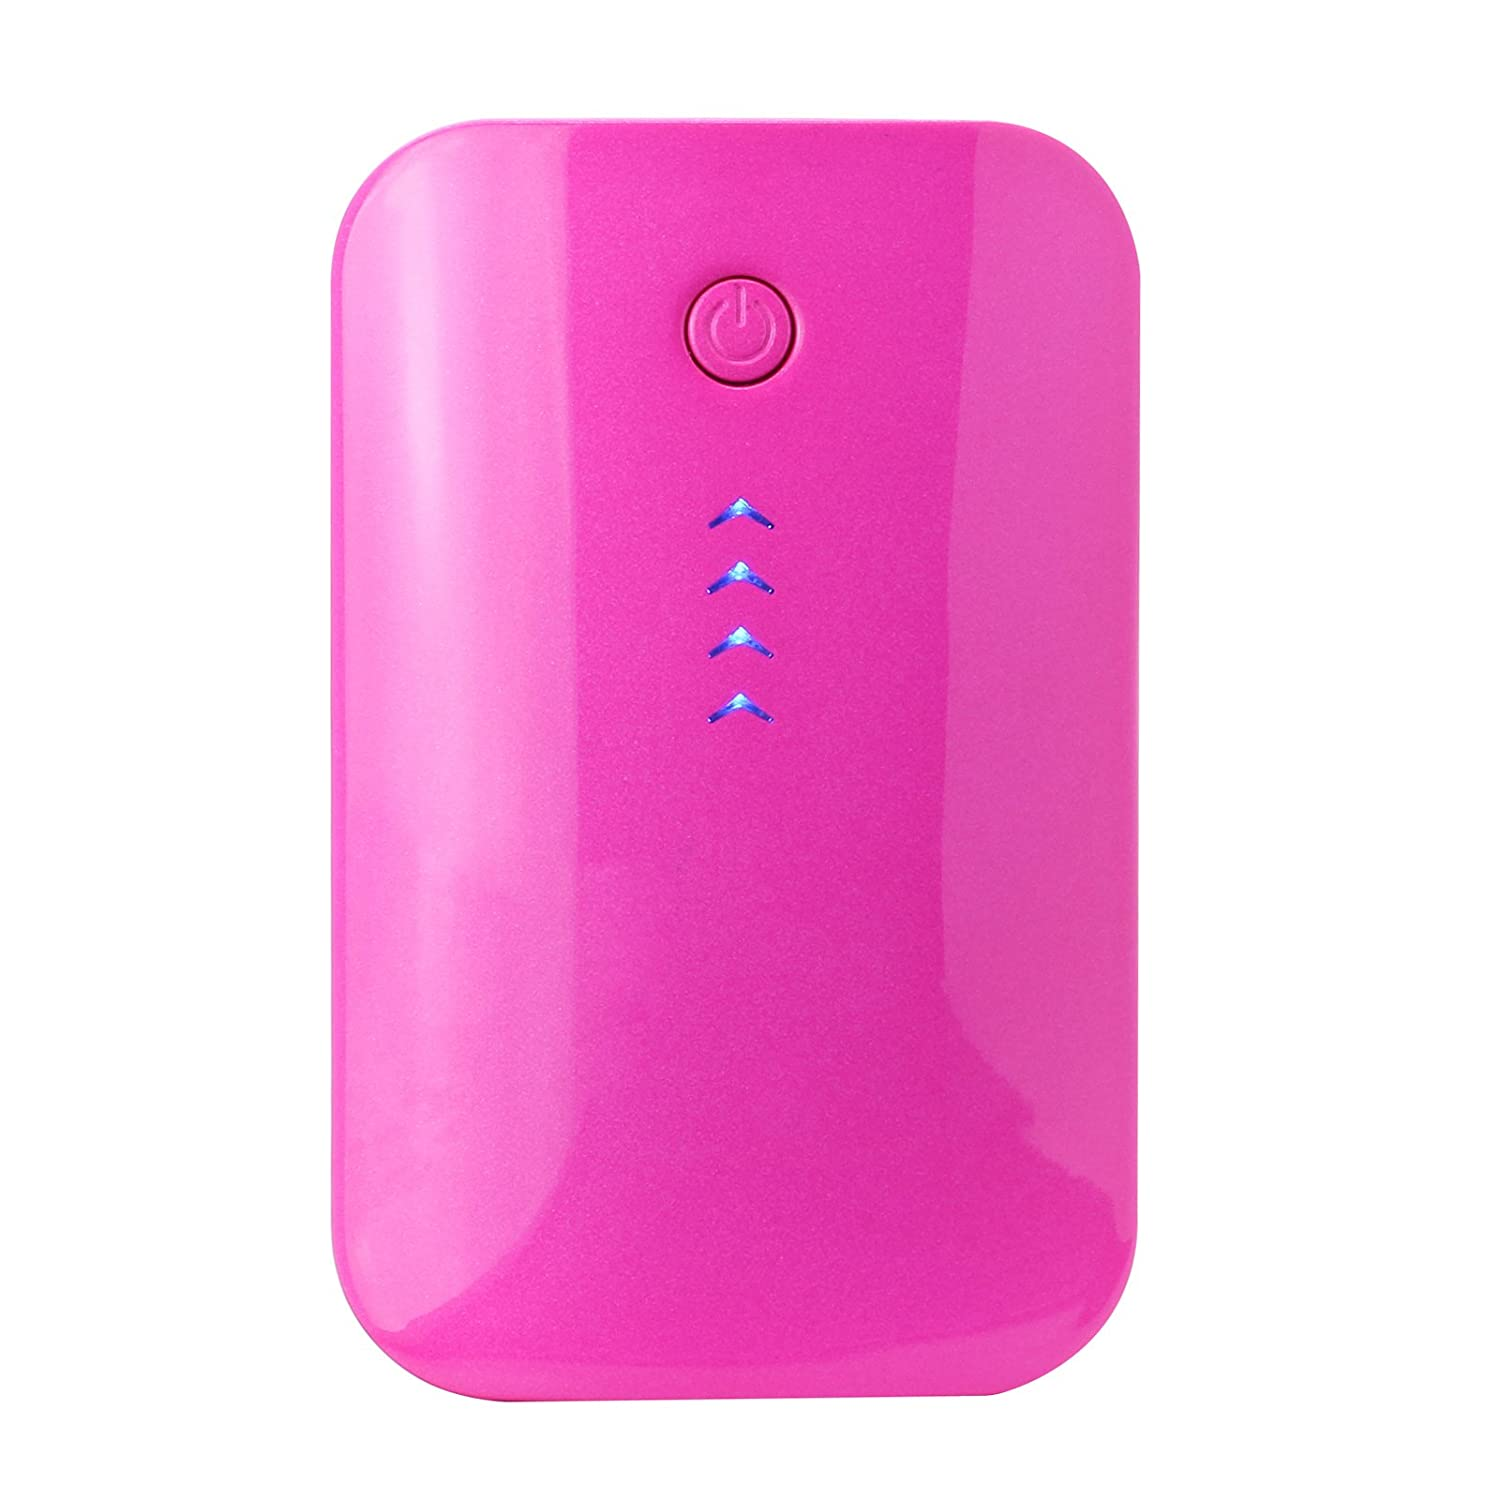 Good Time® Mini 2600mah External Battery Pack Compact Lipstick Size USB Universal Portable Power Bank Charger for Iphone 5 4s 4 3gs, Ipod, Samsung Galaxy S4 S3 Minii8190, S3 I9300, S Ii I9100, S I9000, Galaxy Nexus, Galaxy Note 2,blackberry,nokia and S super slim perfume mobile phone power bank 3000mah portable external battery charger powerbank pack for cell phone